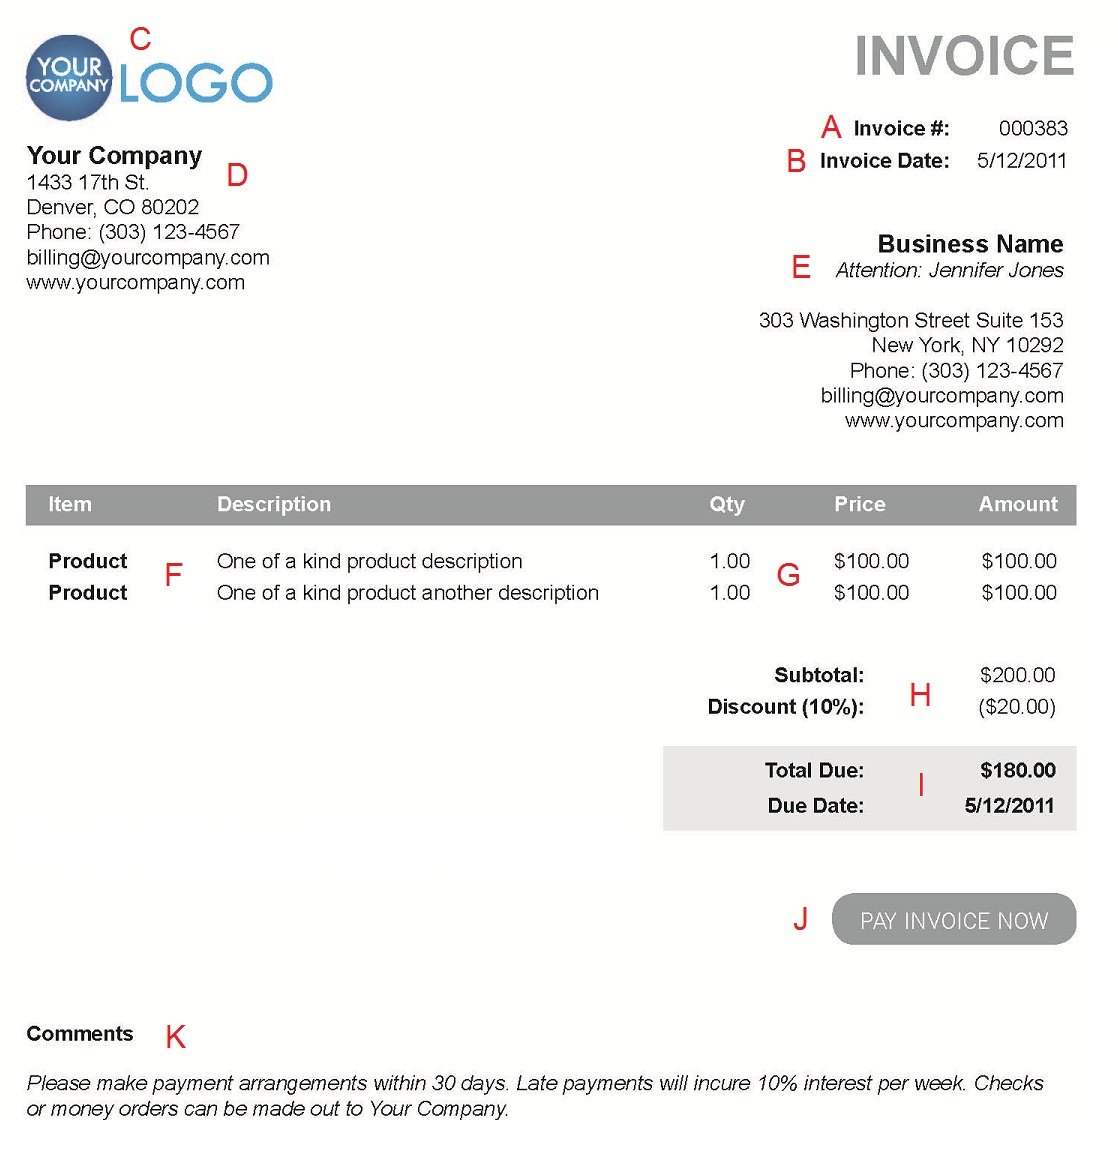 Usdgus  Prepossessing The  Different Sections Of An Electronic Payment Invoice With Lovable A  With Nice Business Invoice Software Free Also Express Invoice For Mac In Addition Hyundai Sonata Invoice Price And Blank Invoice Form Pdf As Well As Paypal Online Invoicing Additionally Free Invoice Software Download For Small Business From Paysimplecom With Usdgus  Lovable The  Different Sections Of An Electronic Payment Invoice With Nice A  And Prepossessing Business Invoice Software Free Also Express Invoice For Mac In Addition Hyundai Sonata Invoice Price From Paysimplecom